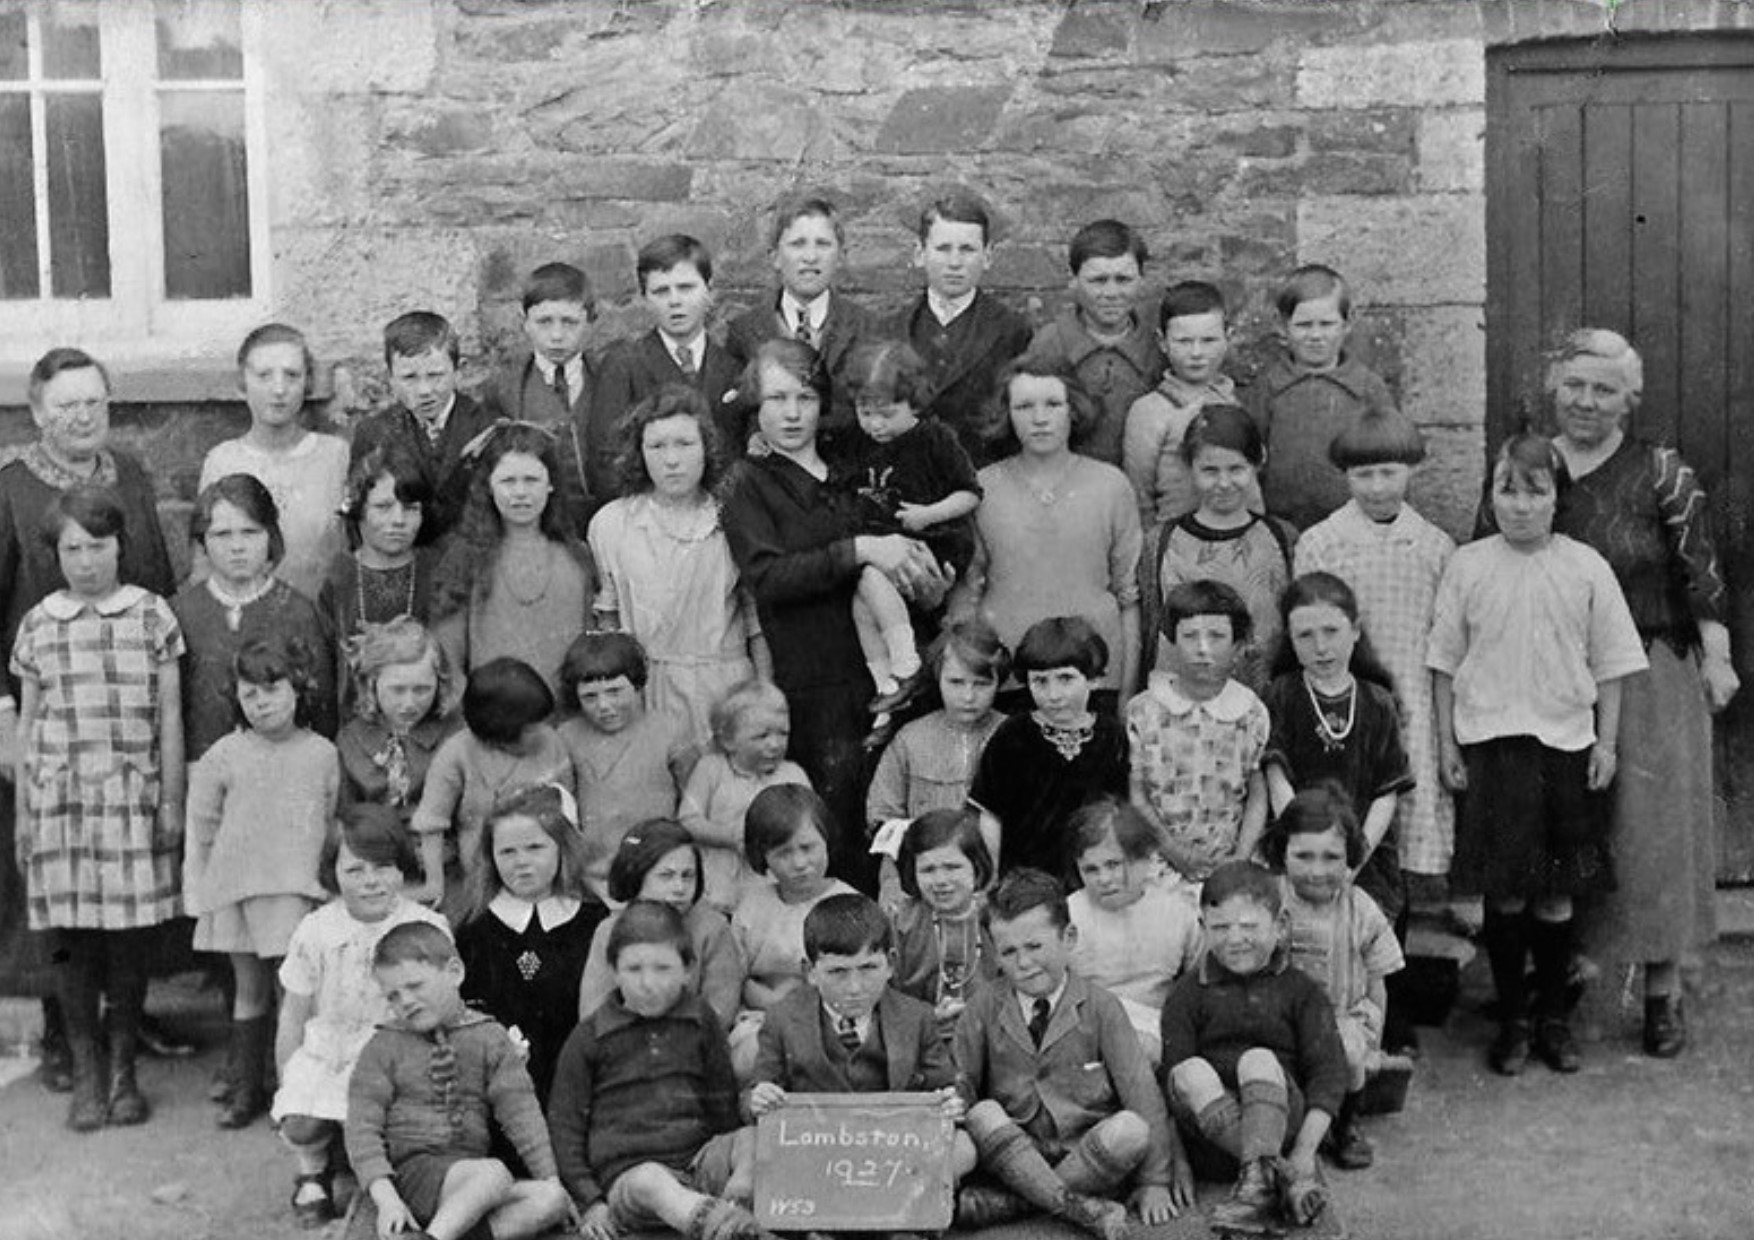 A photograph of a class from Lambston School in 1926.